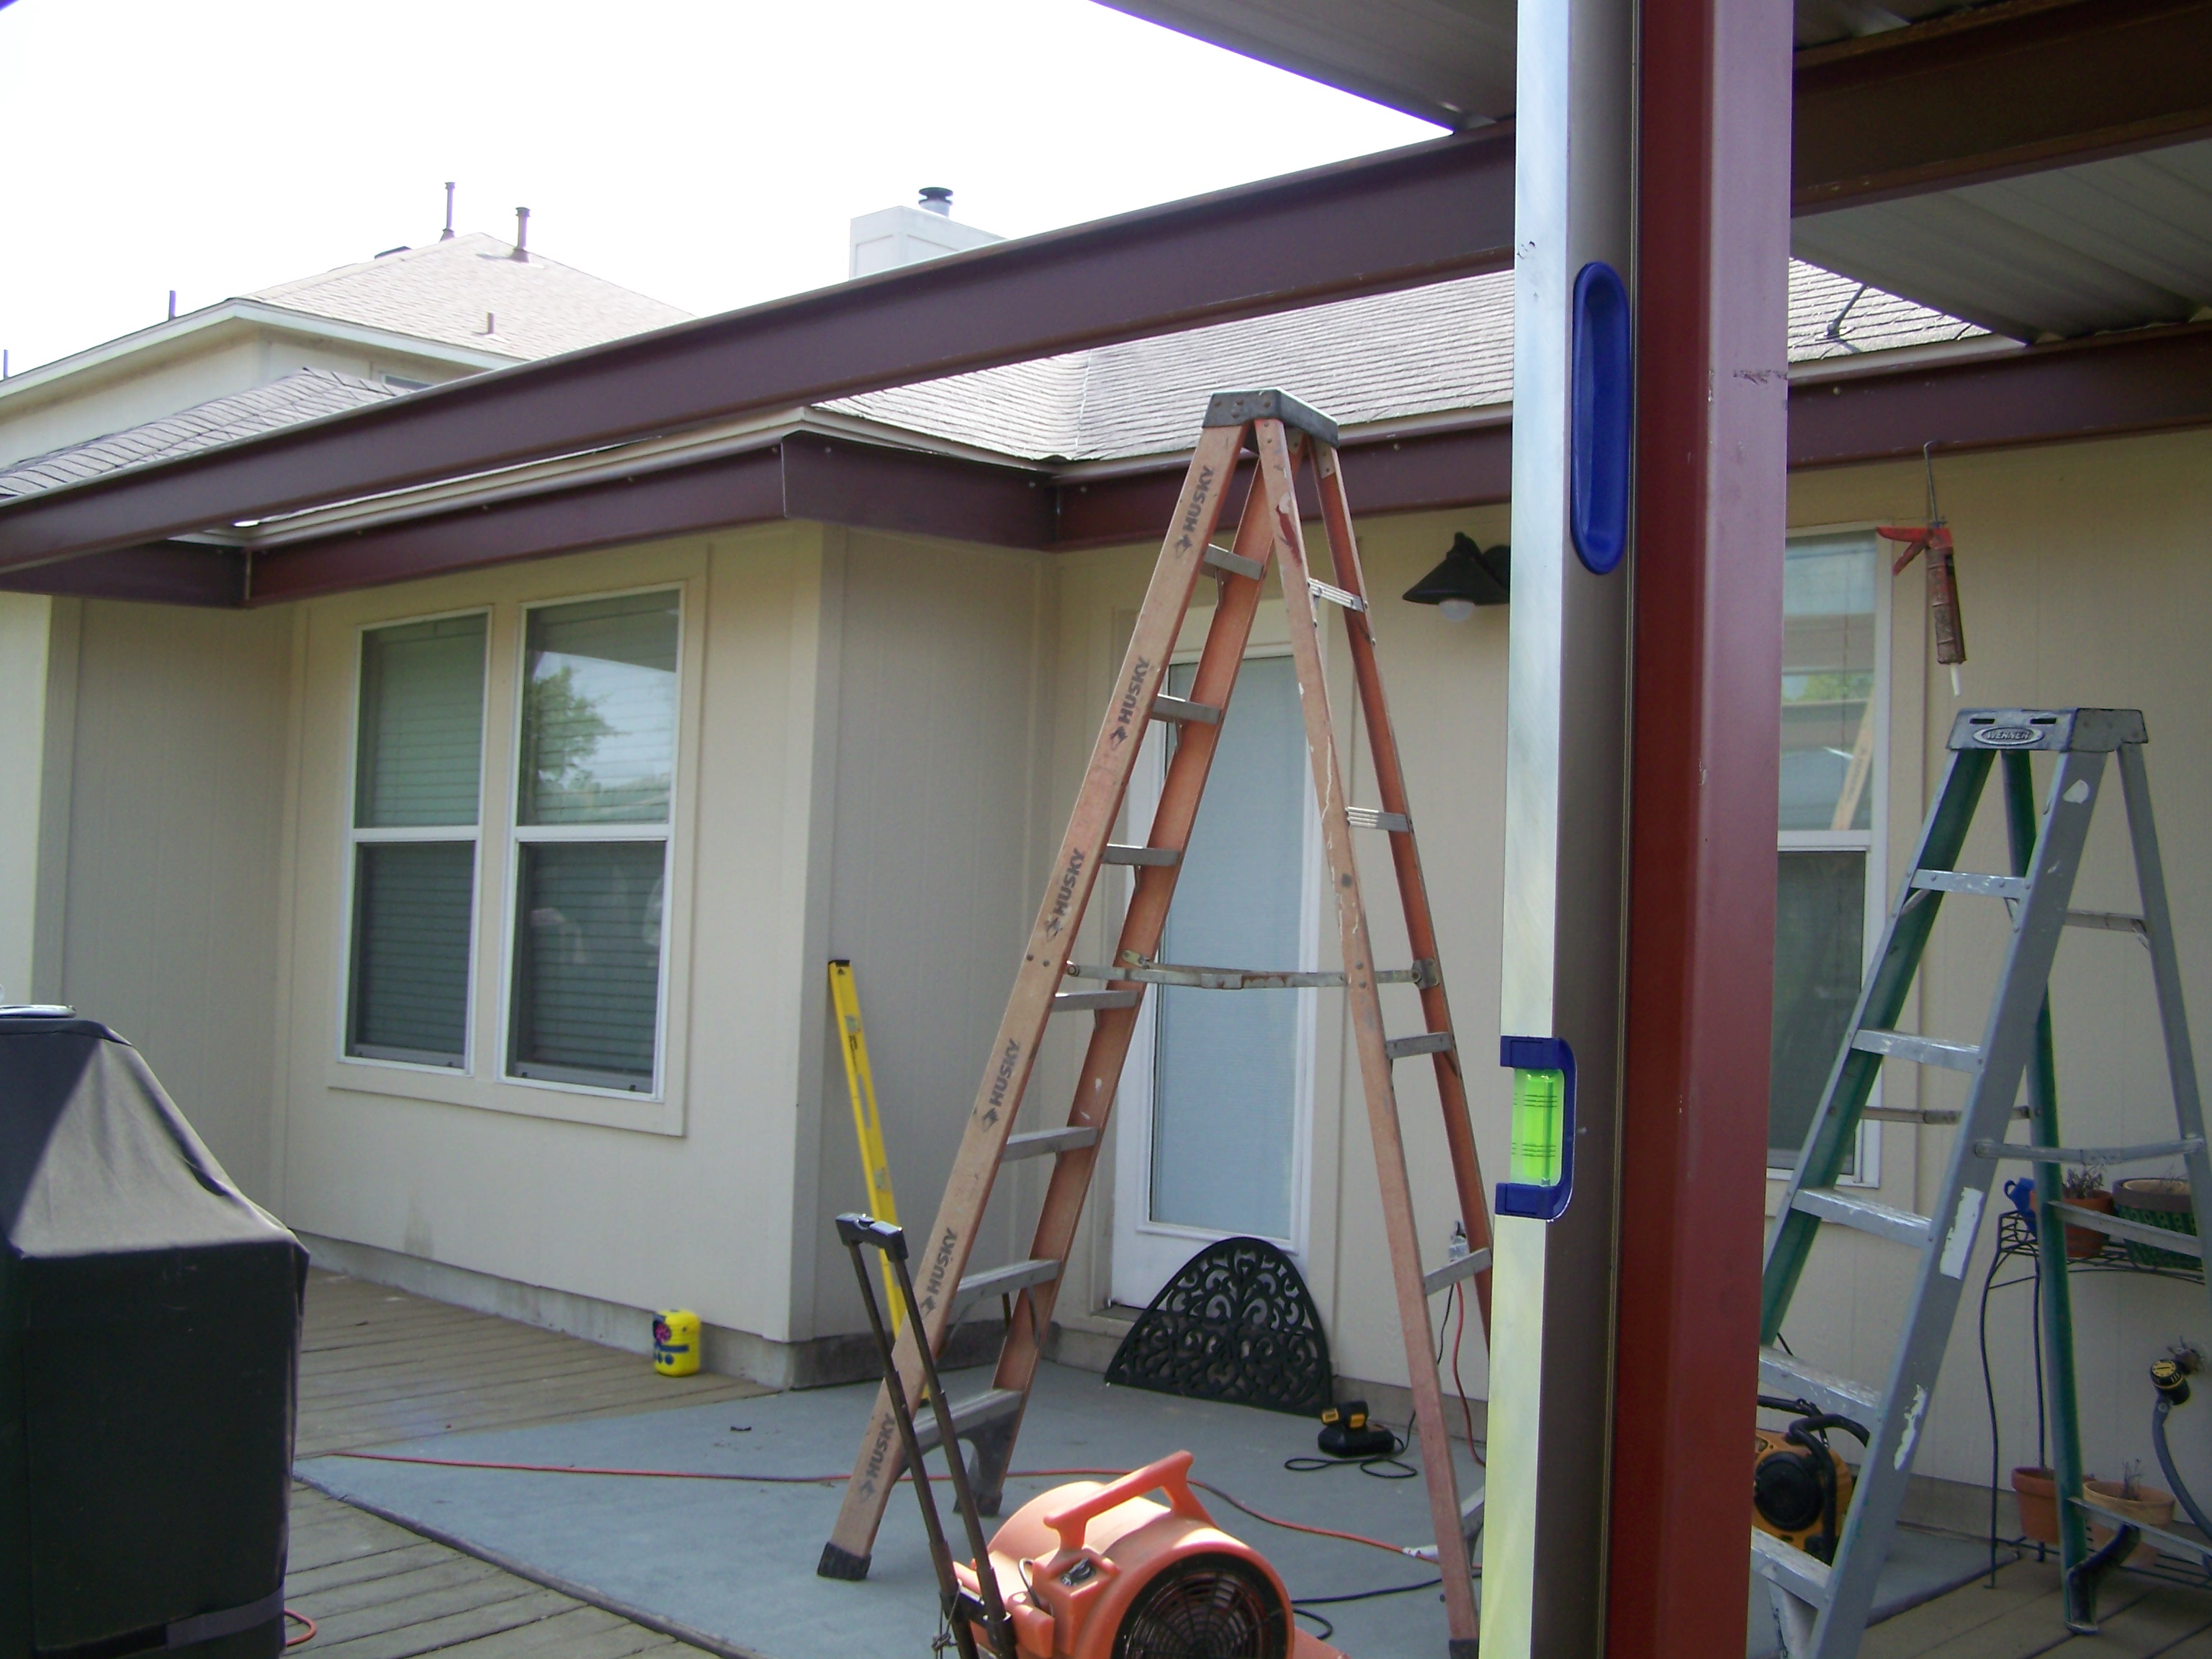 Hutto, Texas Attached Porch Awning - Carport Patio Covers Awnings